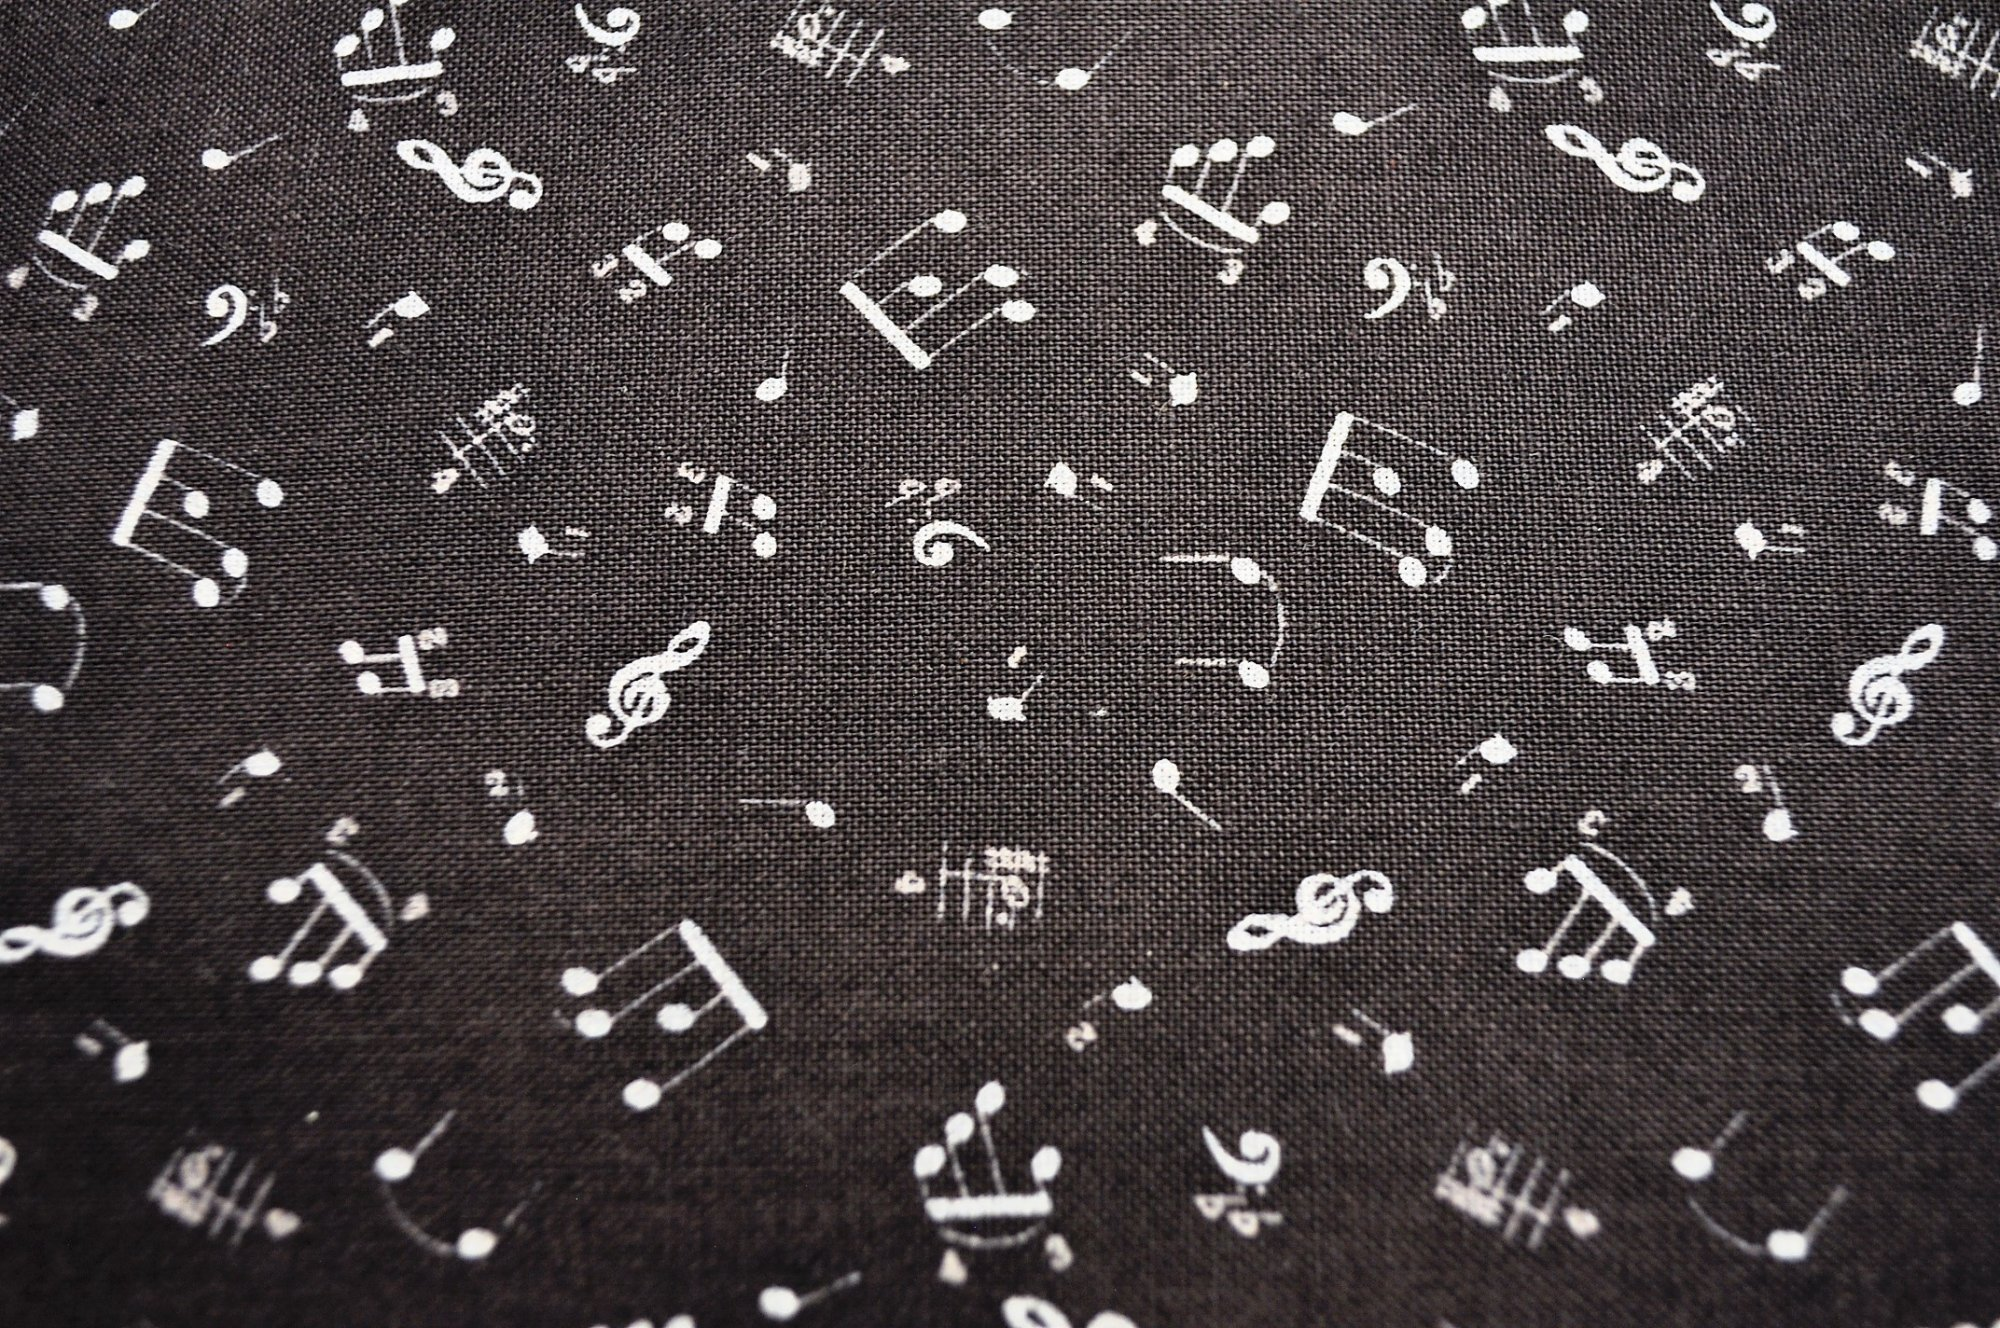 Allegro Musical Notes 4507-548